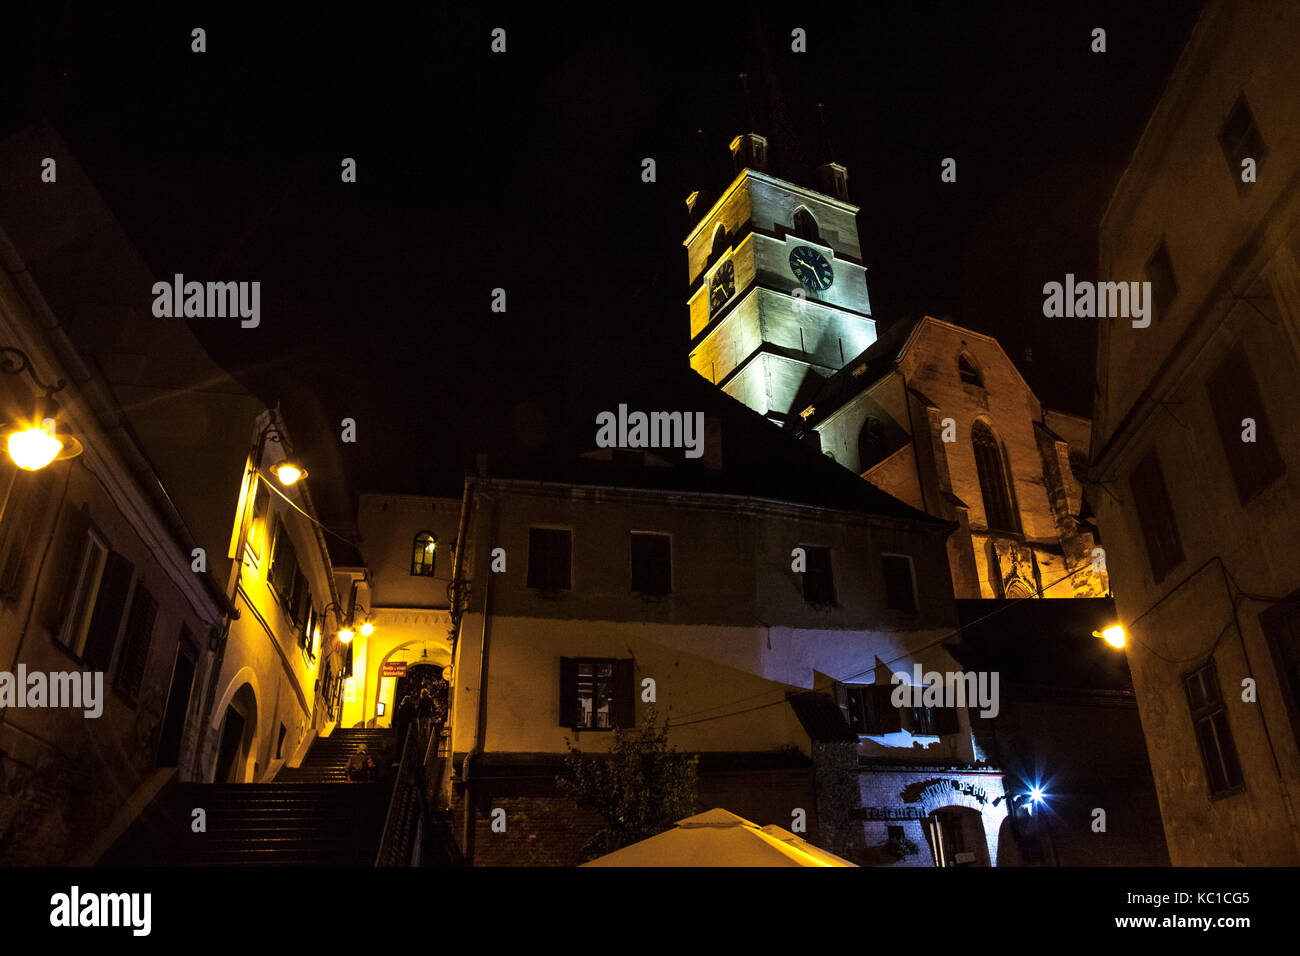 SIBIU, ROMANIA SEPTEMBER 22, 2017: Upper town of Sibiu, in Transylvania, in the evening in a medieval street of - Stock Image